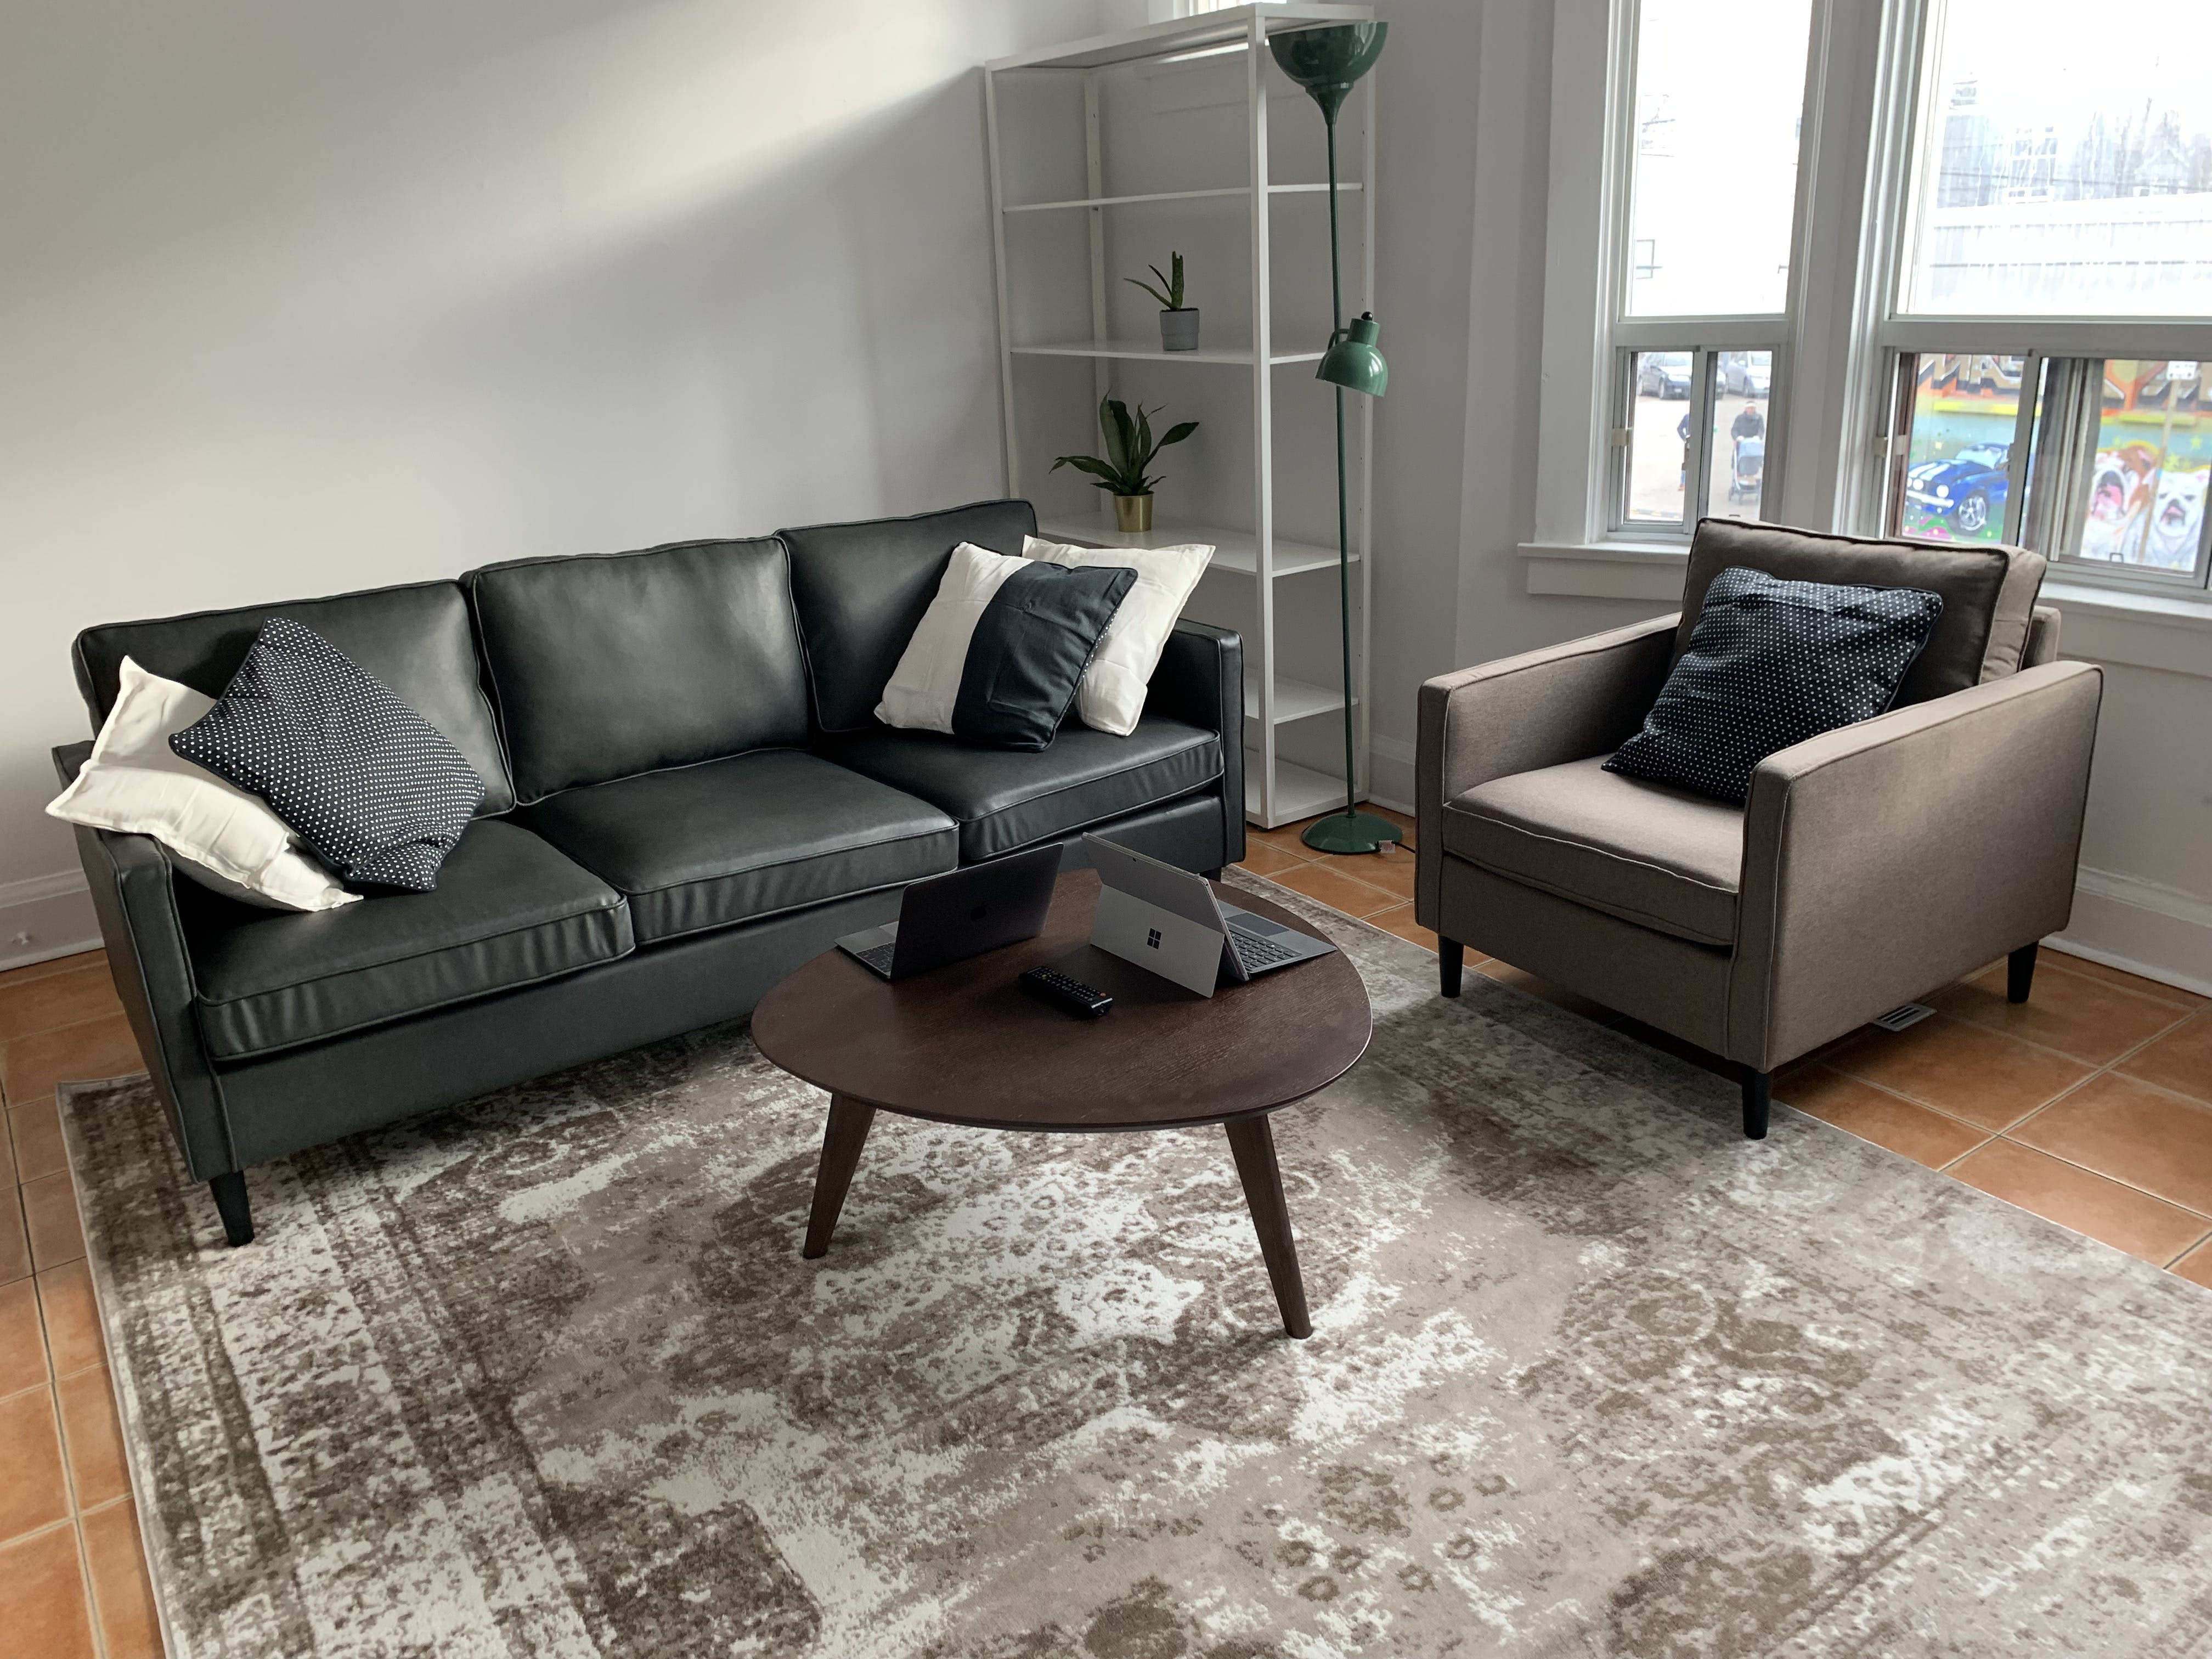 3 Residents   Dundas St. W - Roncesvalles   Newly Renovated Modern Apt. - Incl. Rear Terrace